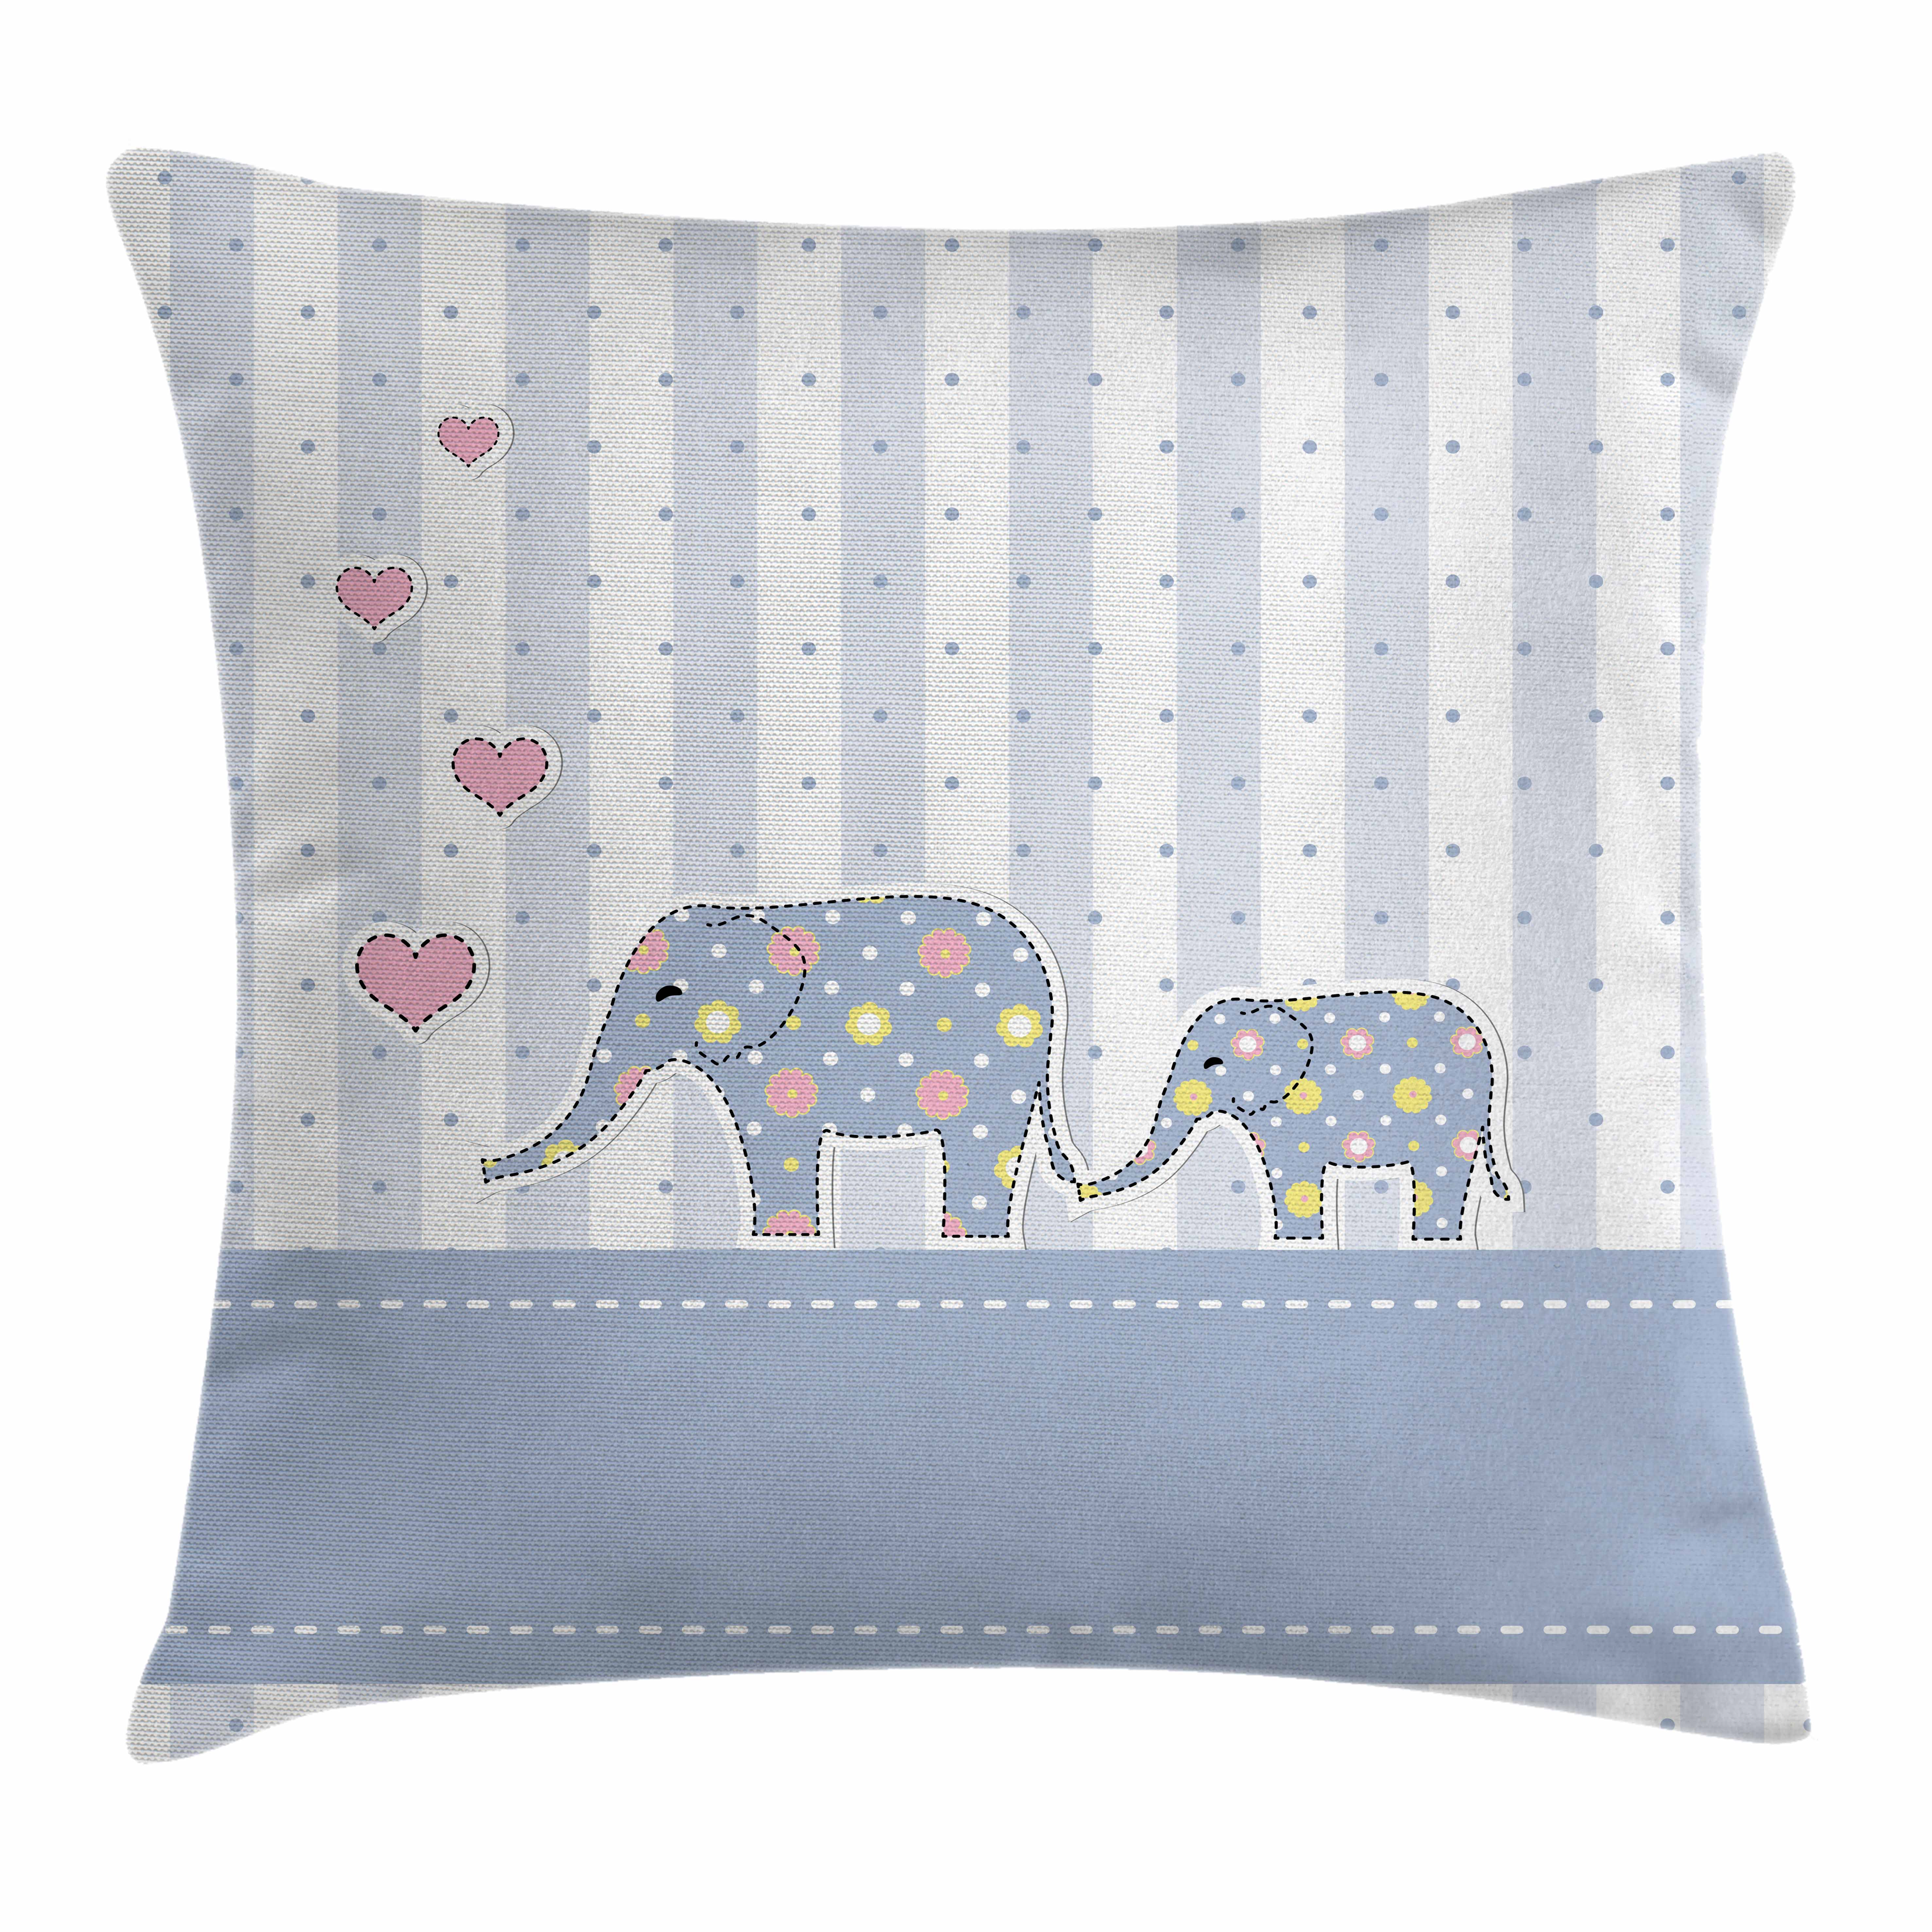 Elephant Nursery Decor Throw Pillow Cushion Cover, Baby Shower Theme Cheerful Newborn Celebration Pastel Toned Striped, Decorative Square Accent Pillow Case, 16 X 16 Inches, Multicolor, by Ambesonne